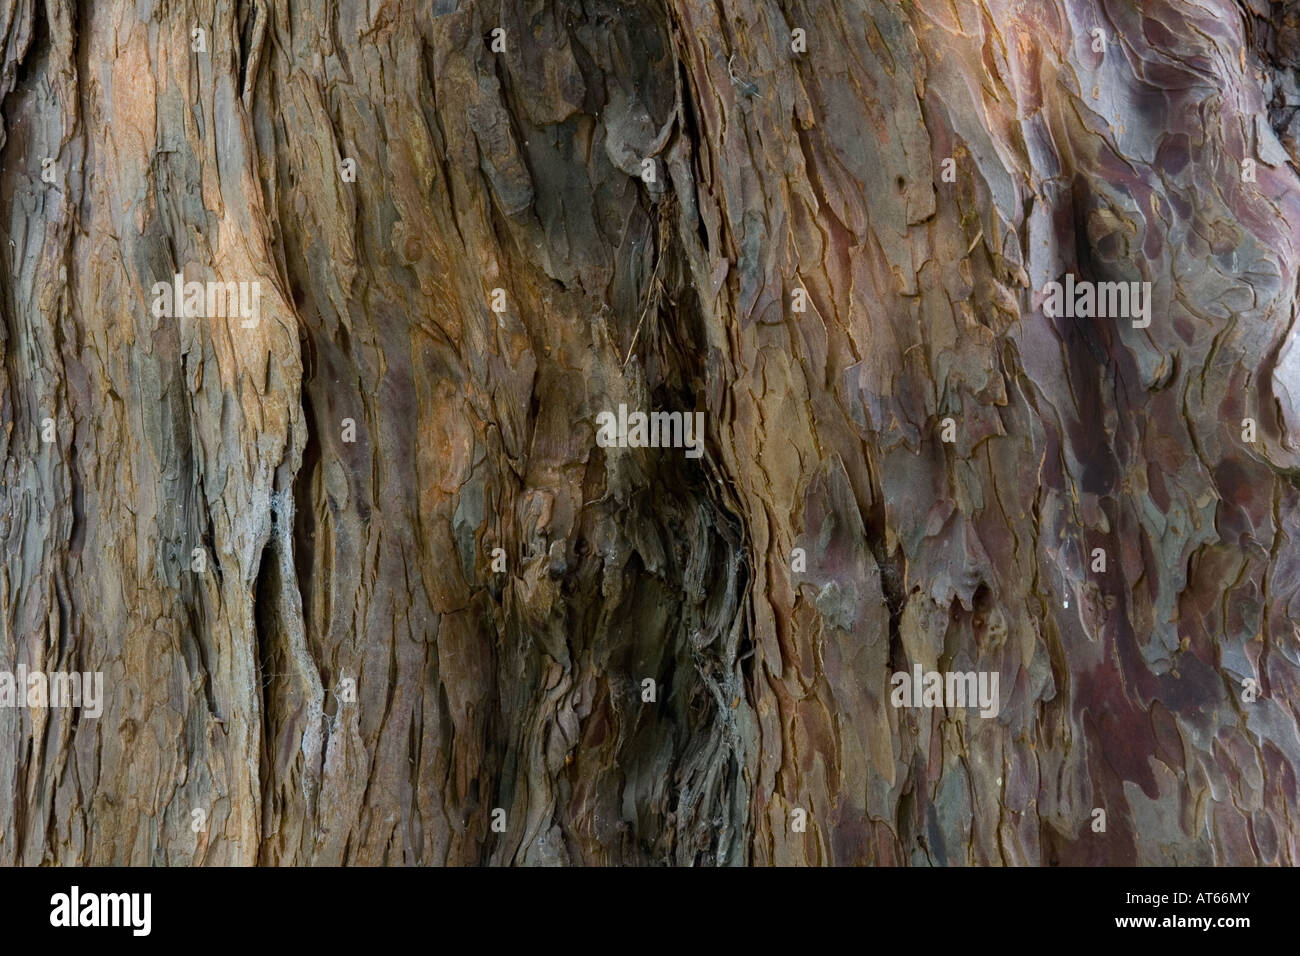 Bark on the trunk of one of the Overton Yew Trees, one of the Sevon Wonders of Wales - Stock Image